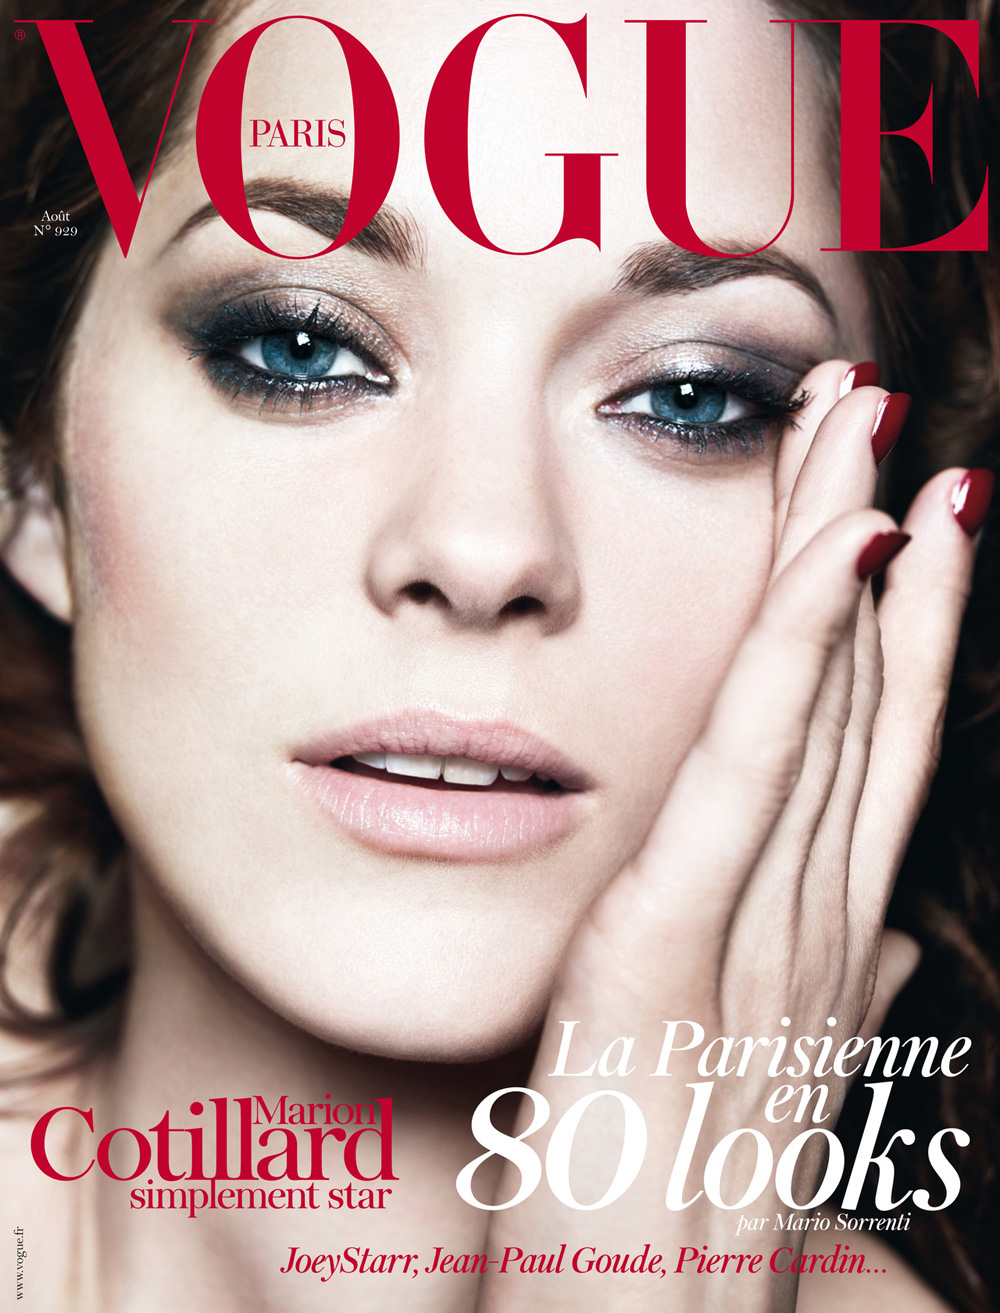 Marion Cotillard Vogue Paris Cover